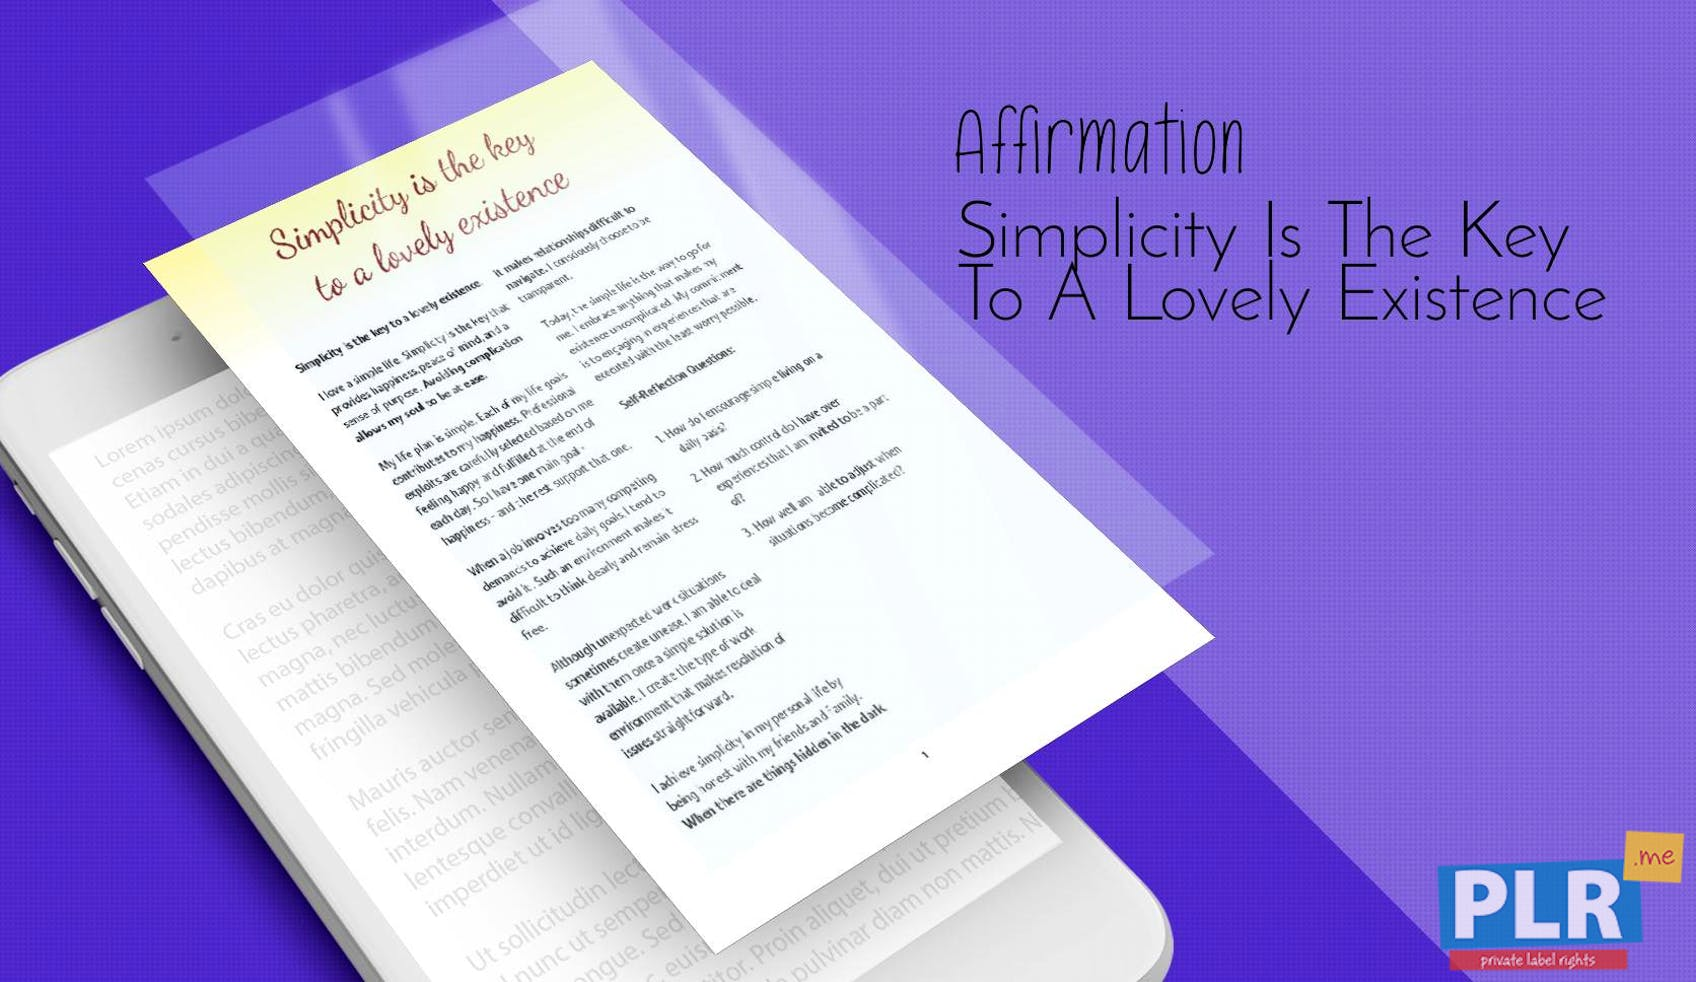 Simplicity Is The Key To A Lovely Existence